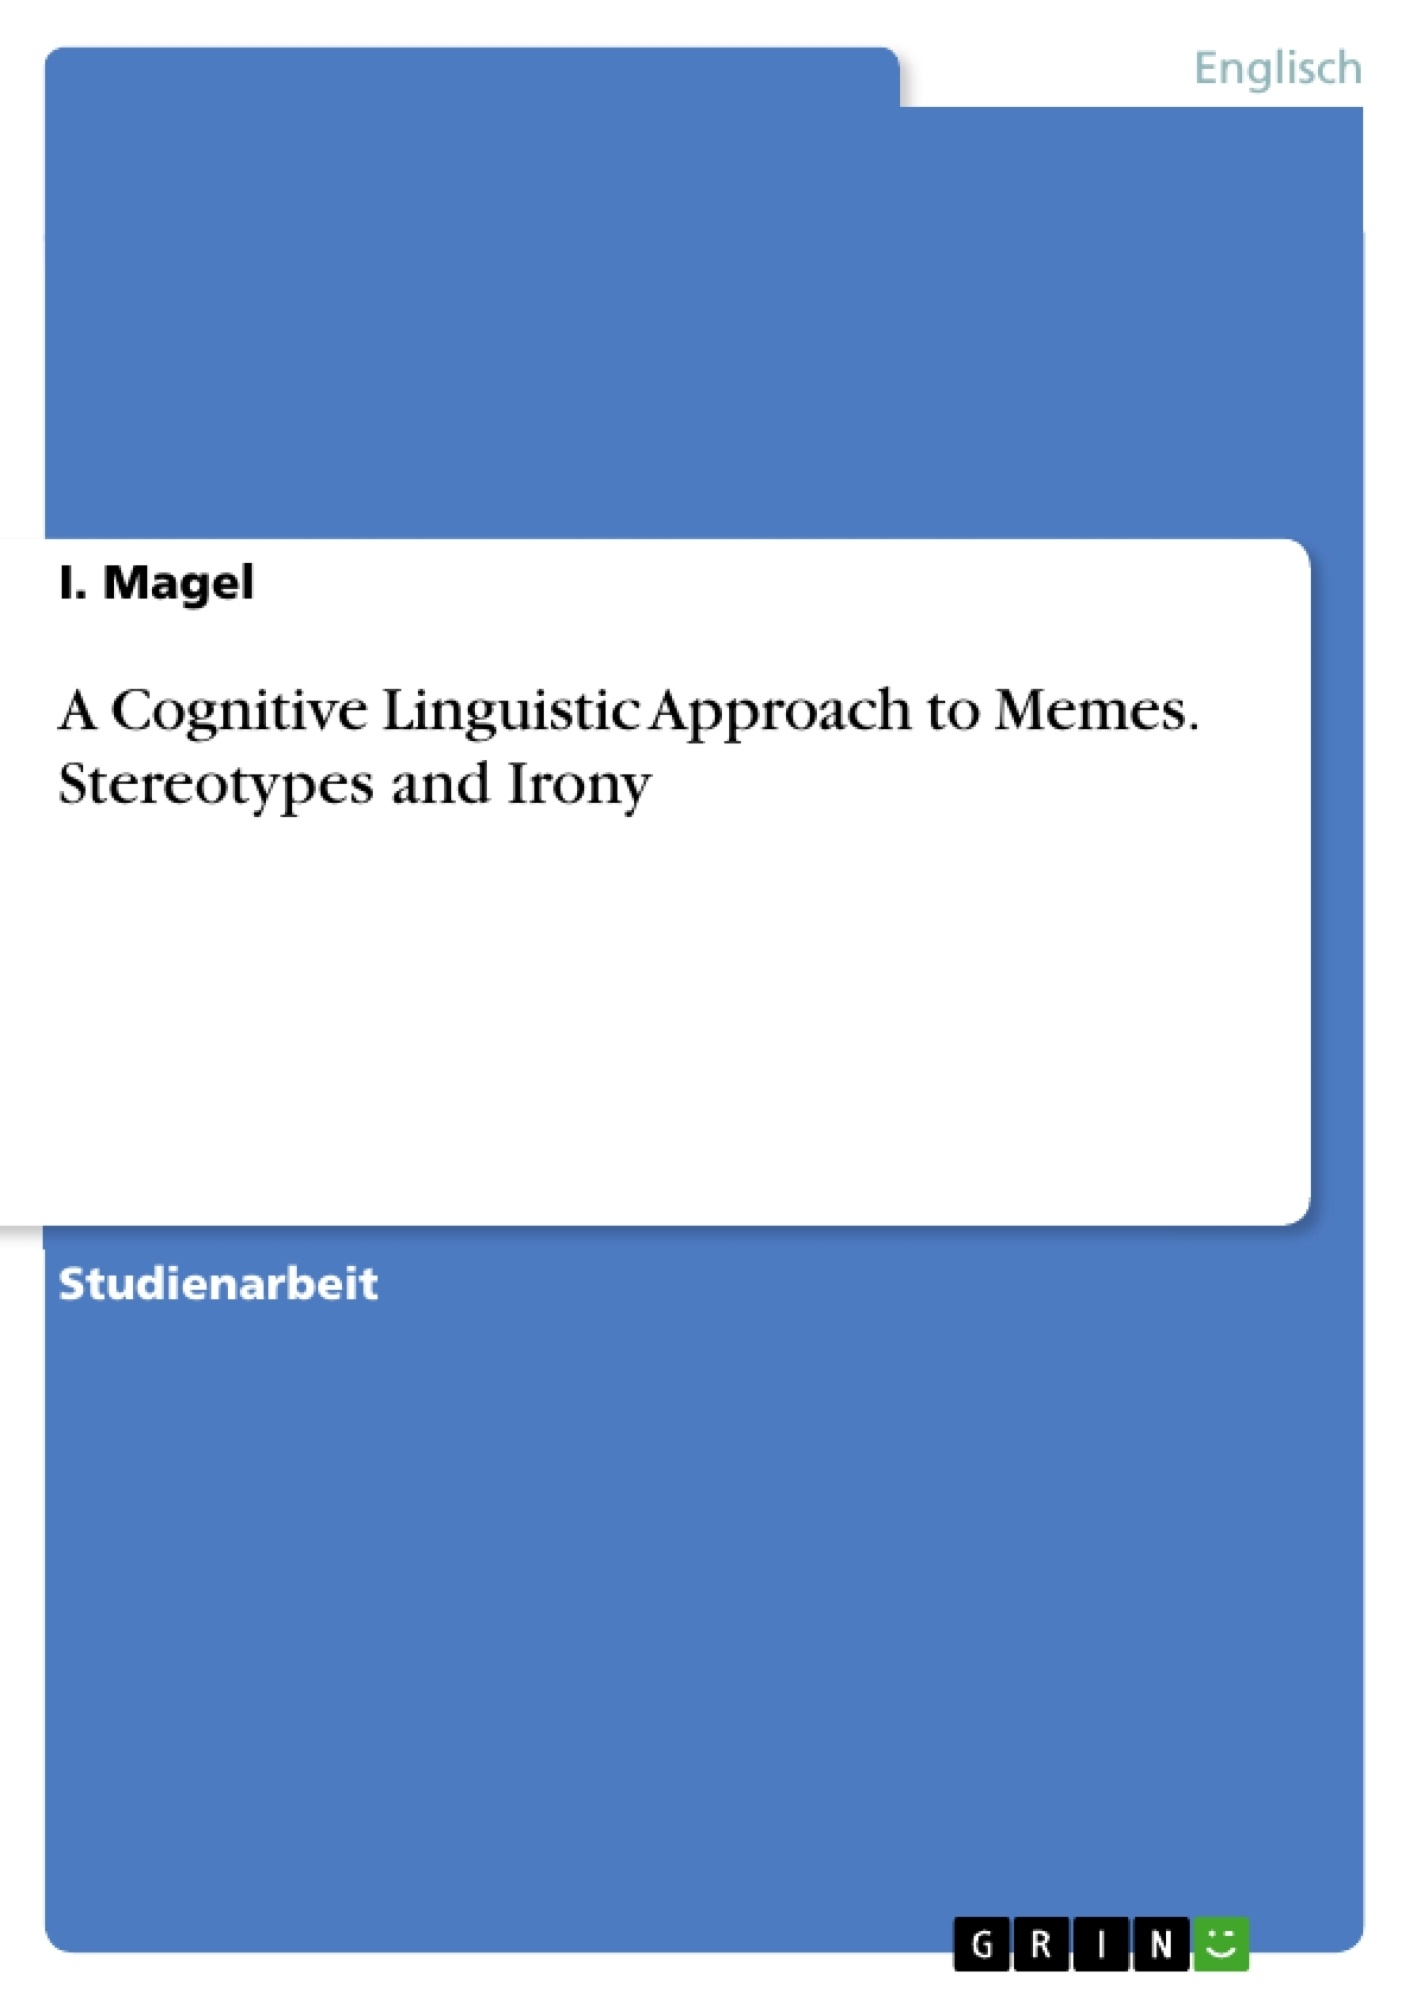 Titel: A Cognitive Linguistic Approach to Memes. Stereotypes and Irony